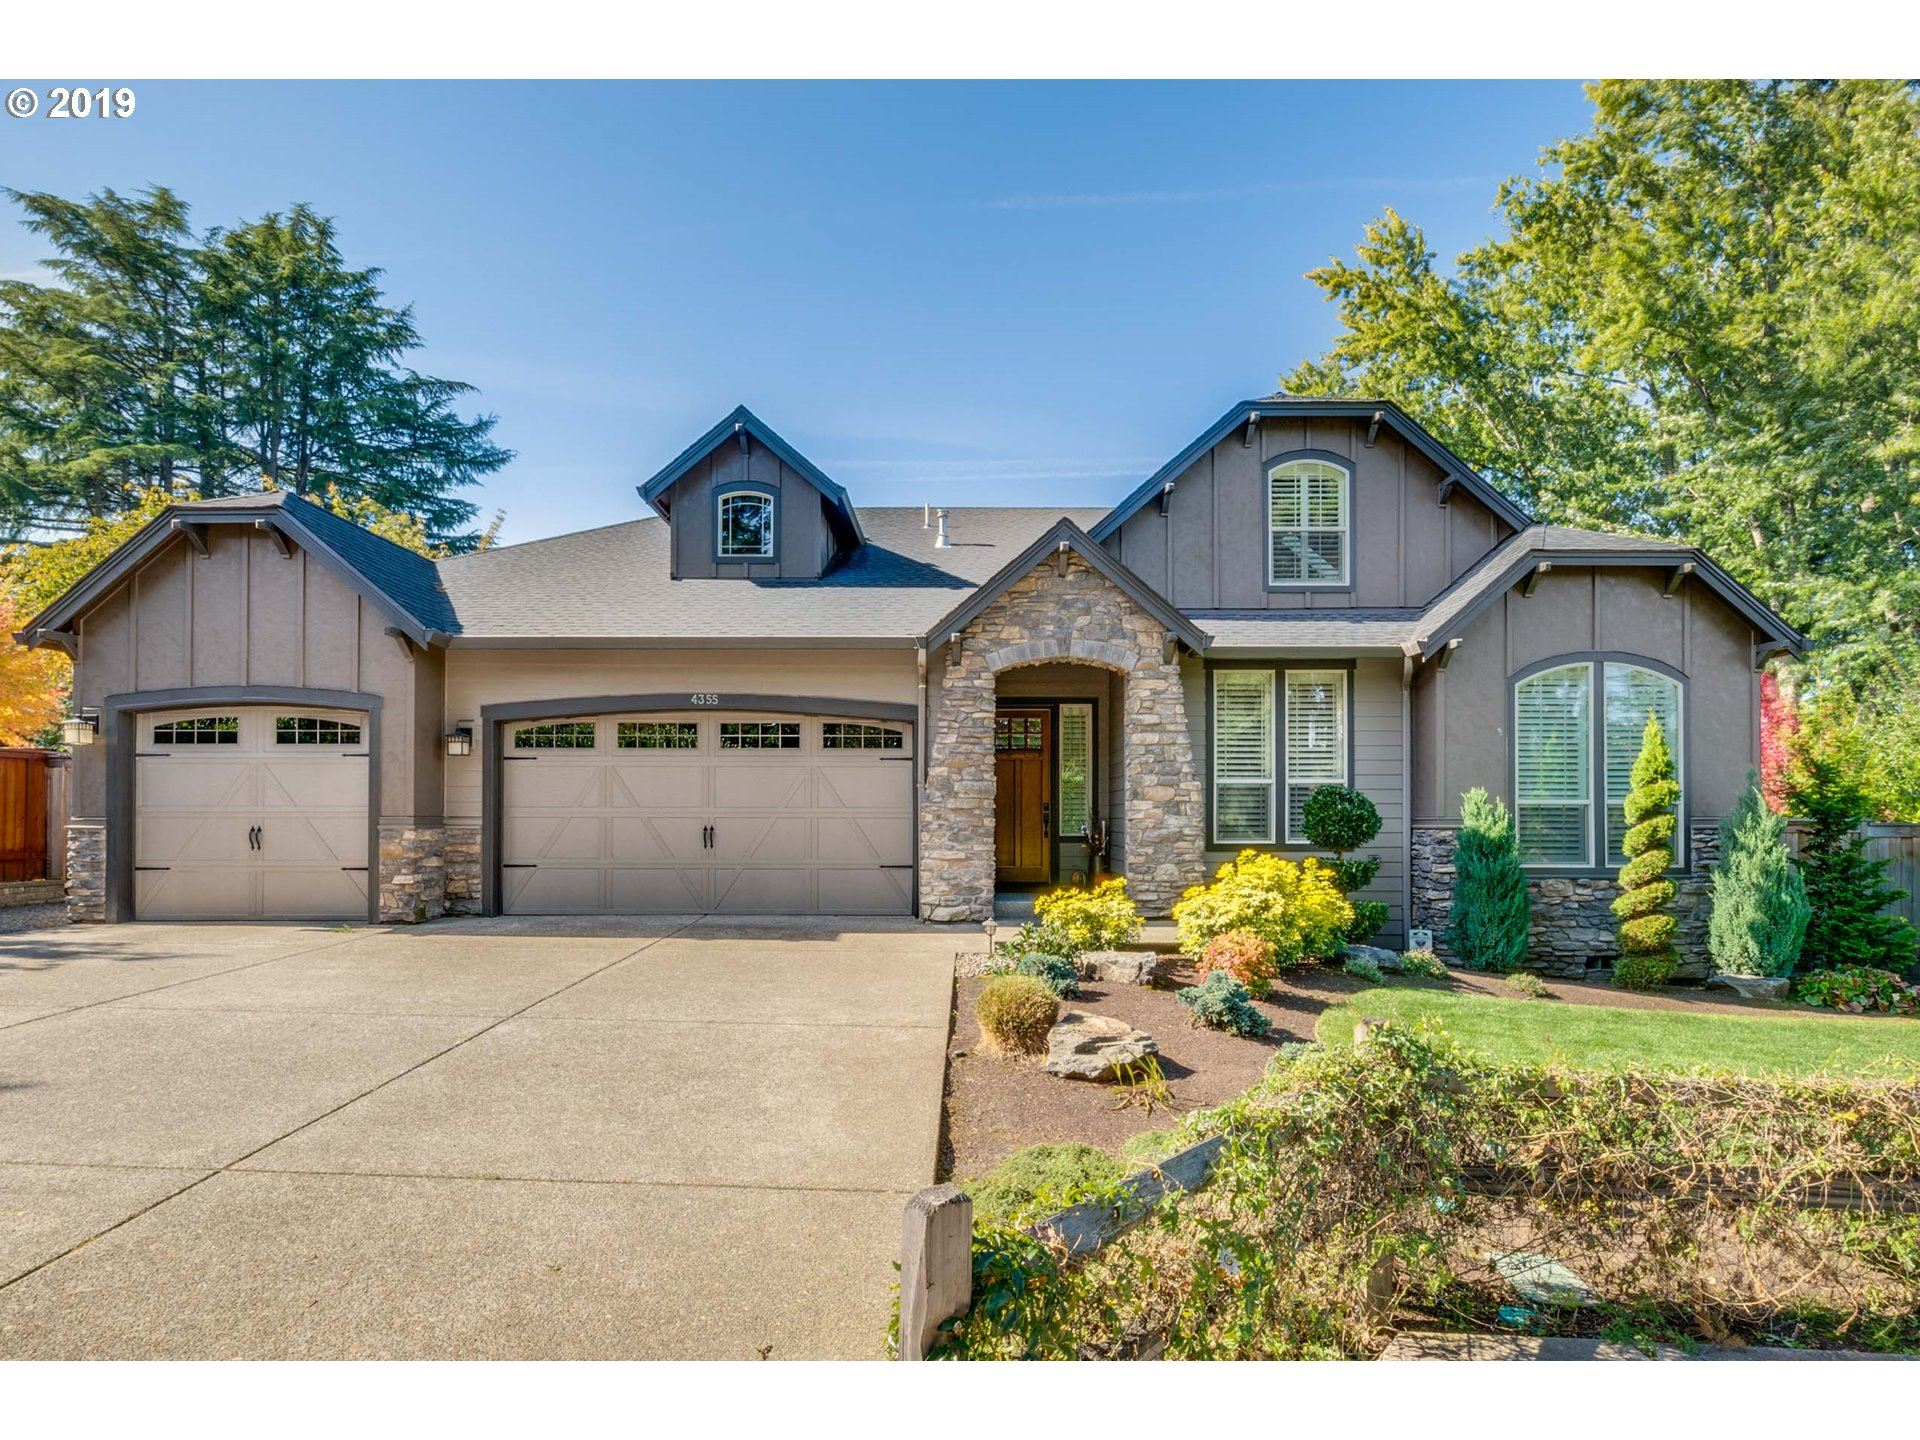 4355 SW LAURELWOOD AVE, Portland, OR 97225 - MLS#: 19206628